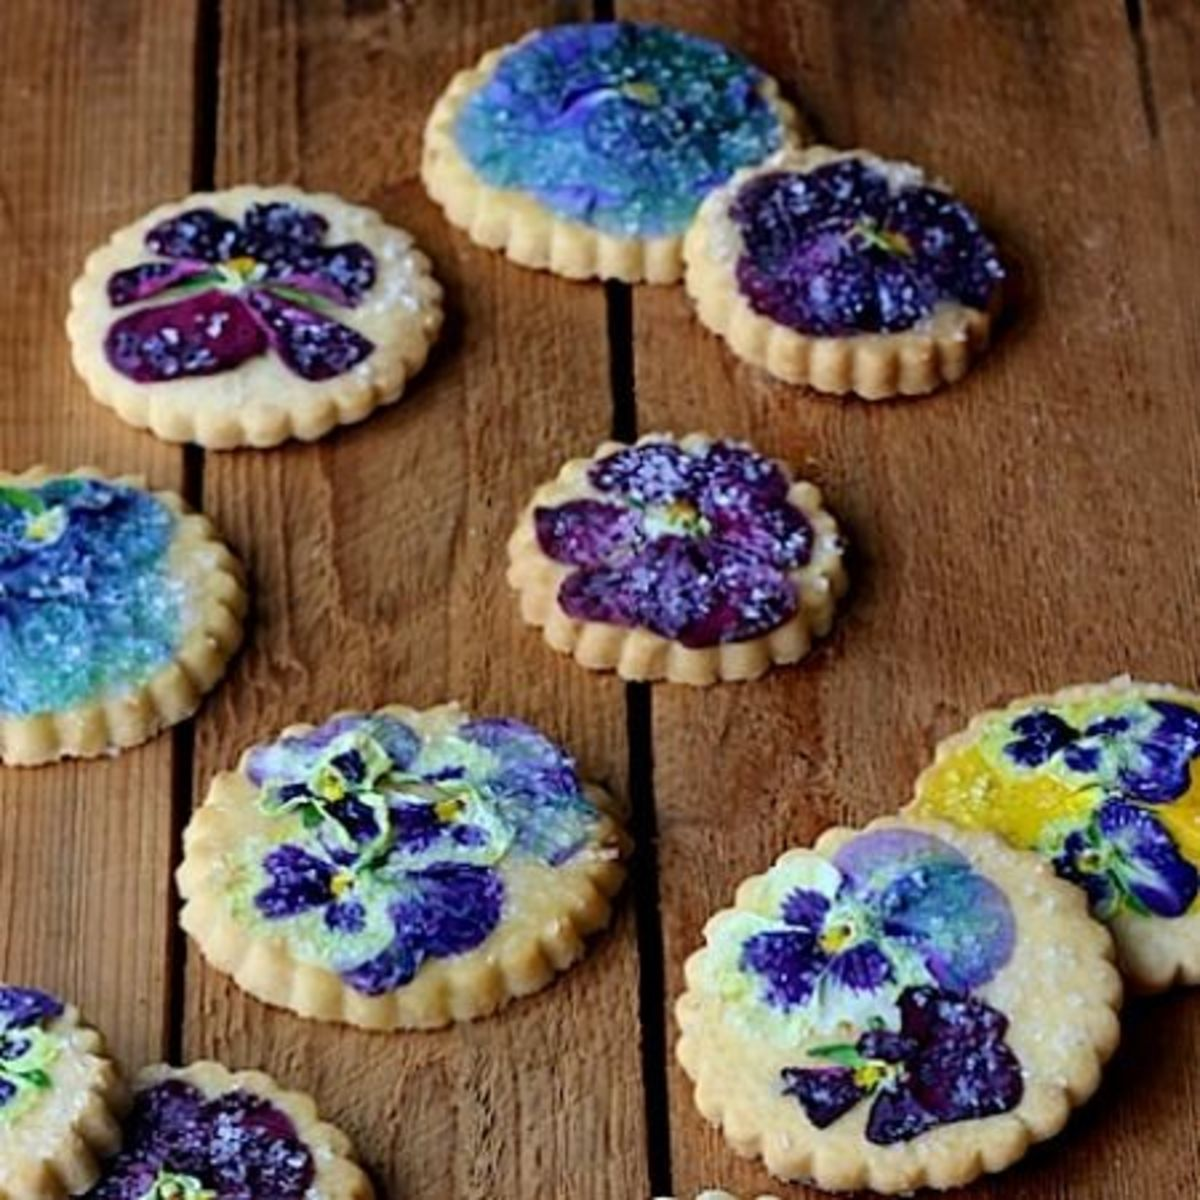 Another Pansy Shortbread Cookie Recipe